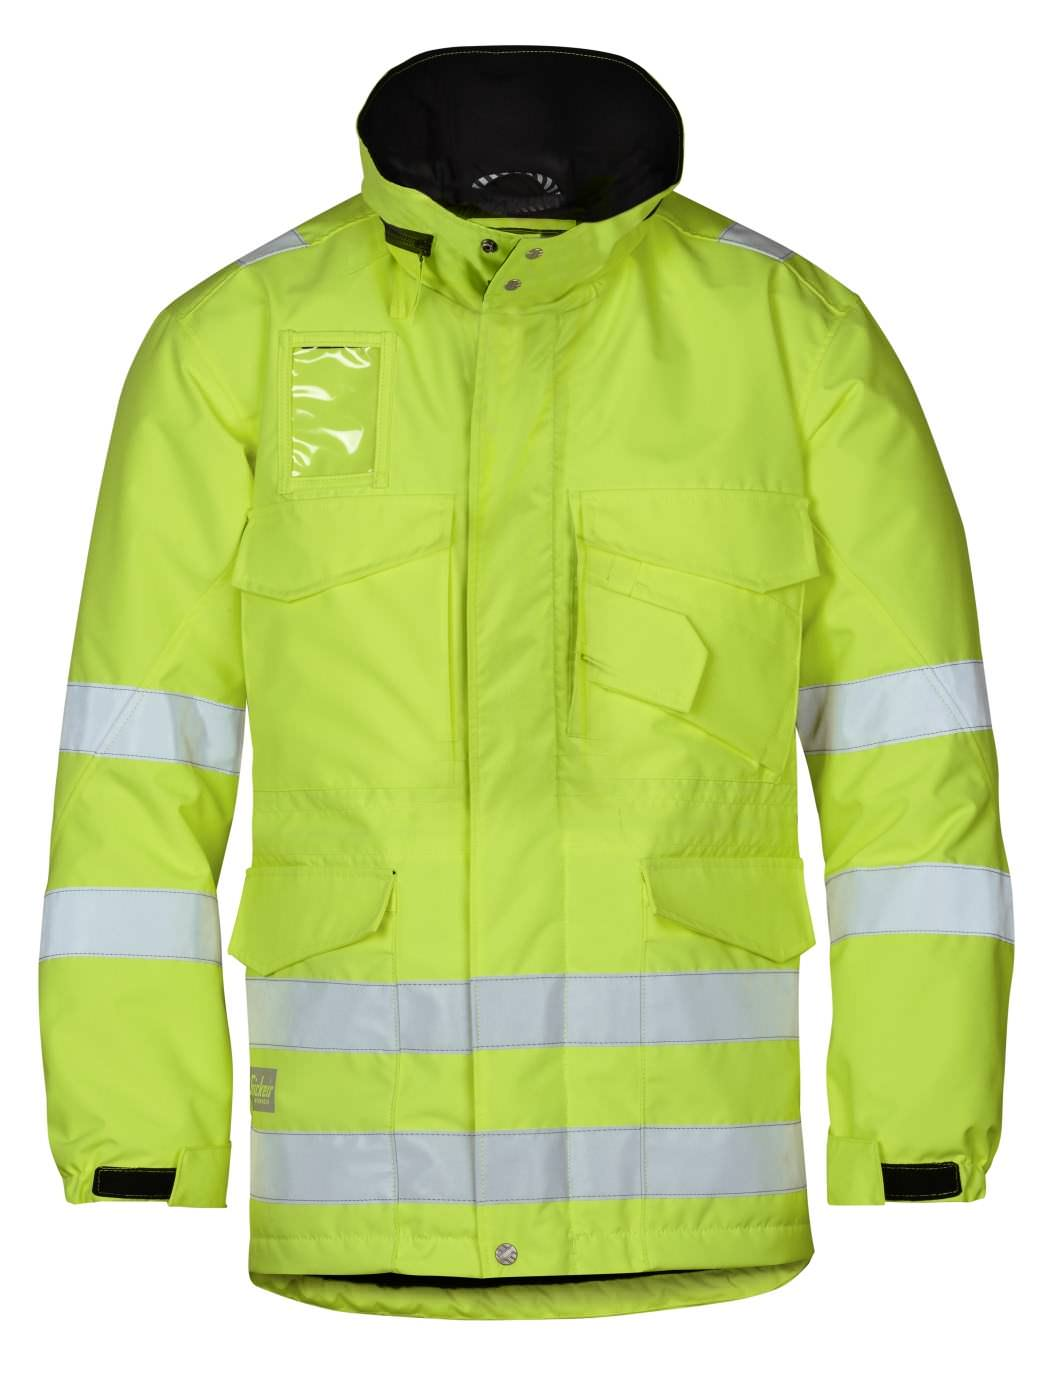 Snickers 1823 High-Vis Winter Long Jacket, Class 3